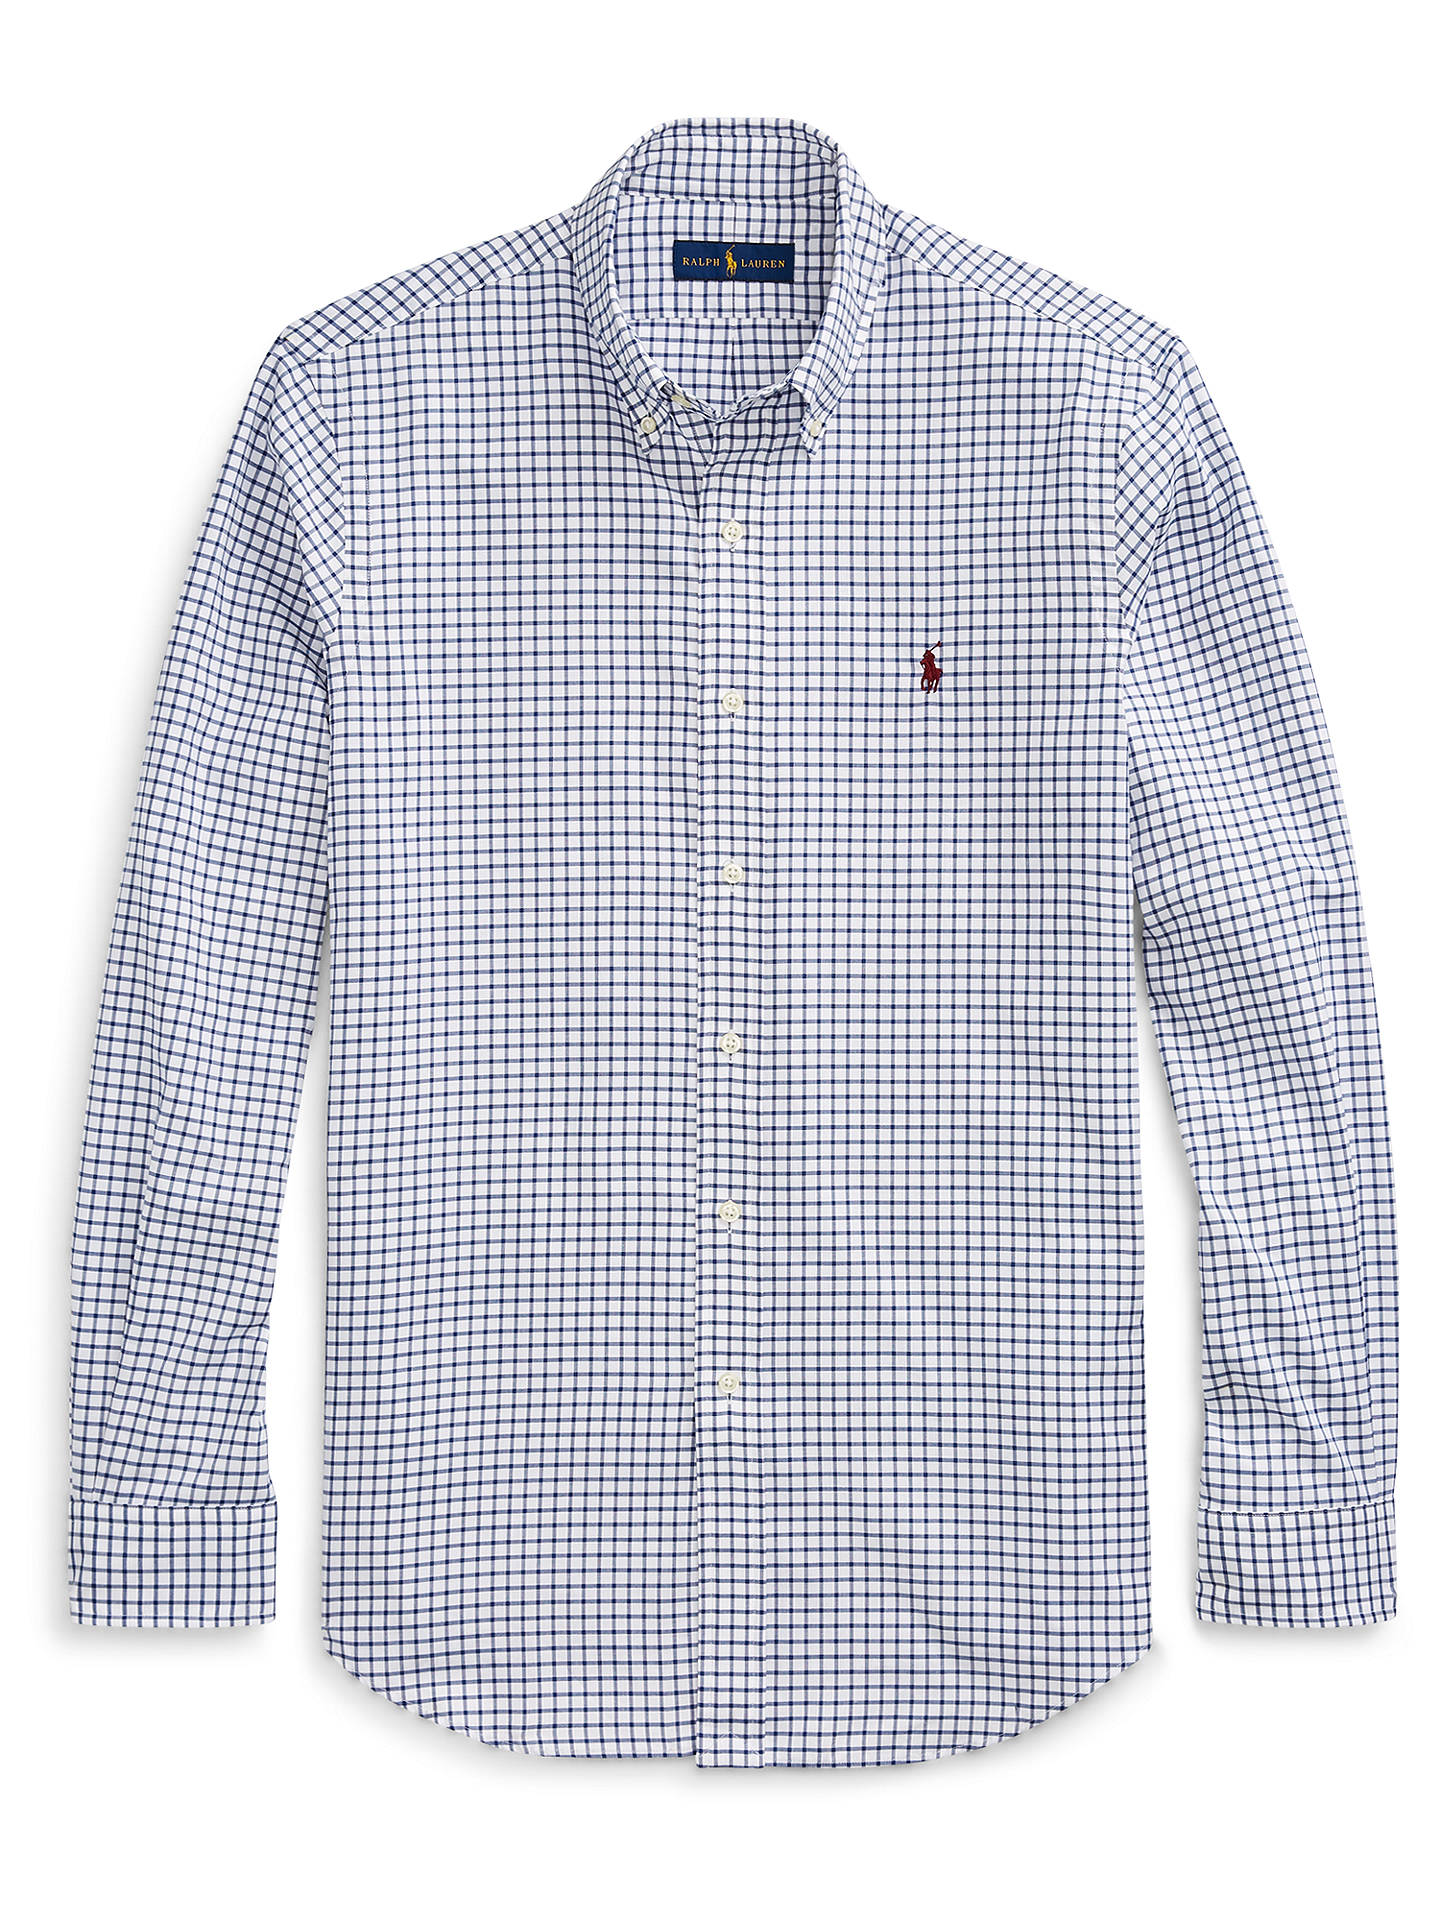 Buy Polo Ralph Lauren Gingham Shirt, Royal Blue/White, XL Online at johnlewis.com